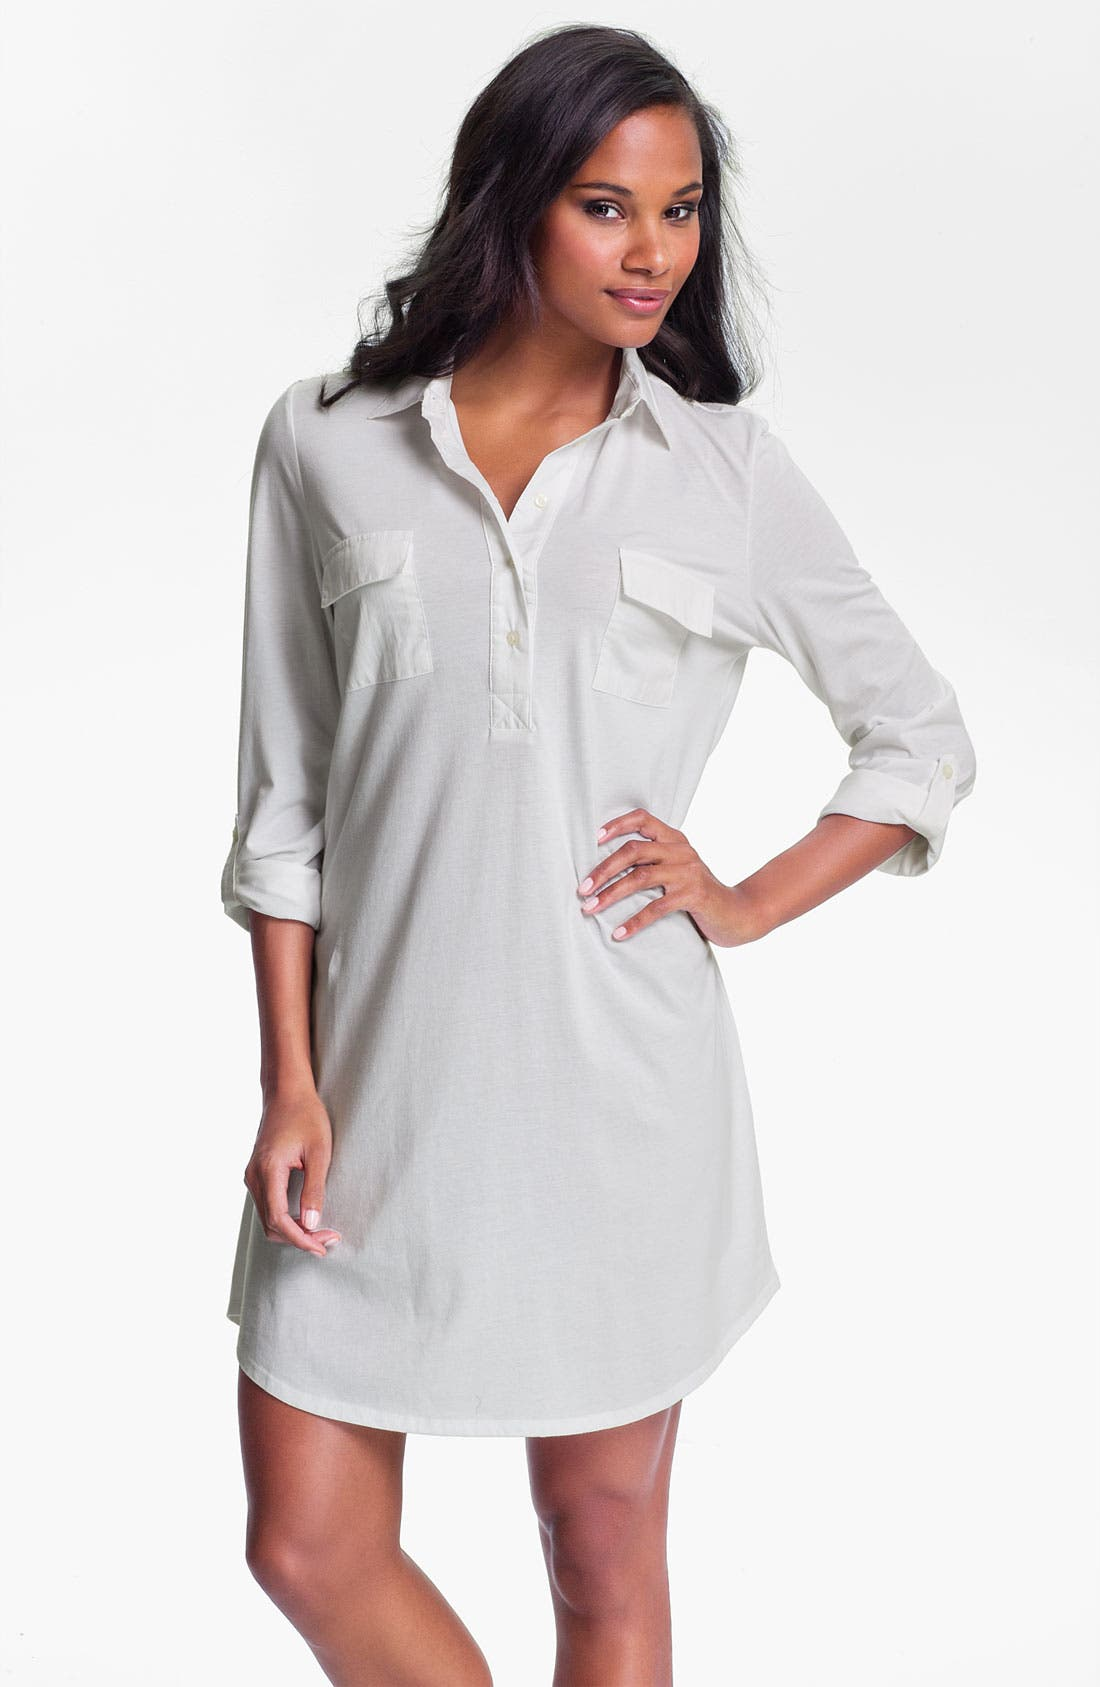 Alternate Image 1 Selected - Lauren Ralph Lauren Sleepwear Woven Trim Knit Nightshirt